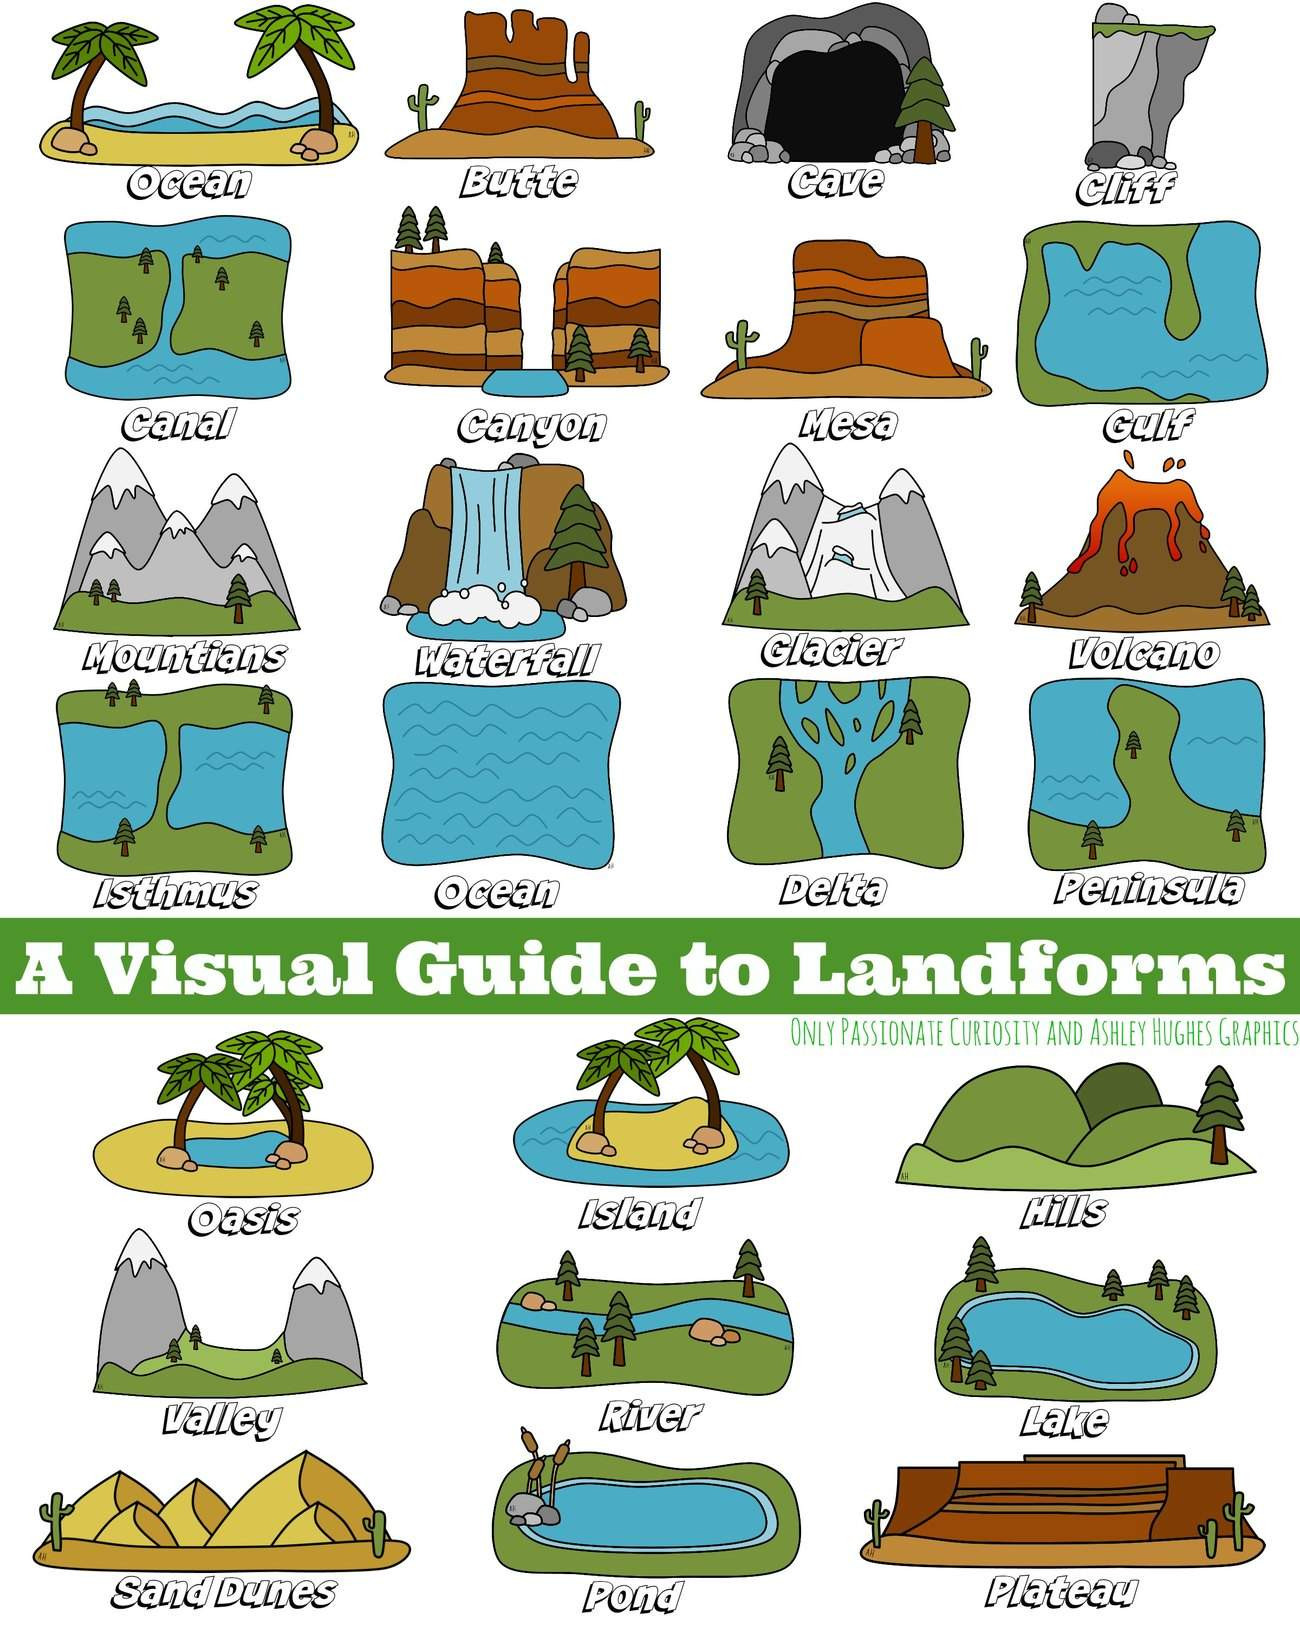 Landforms Worksheet for Kindergarten A Visual Guide to Landforms Ly Passionate Curiosity